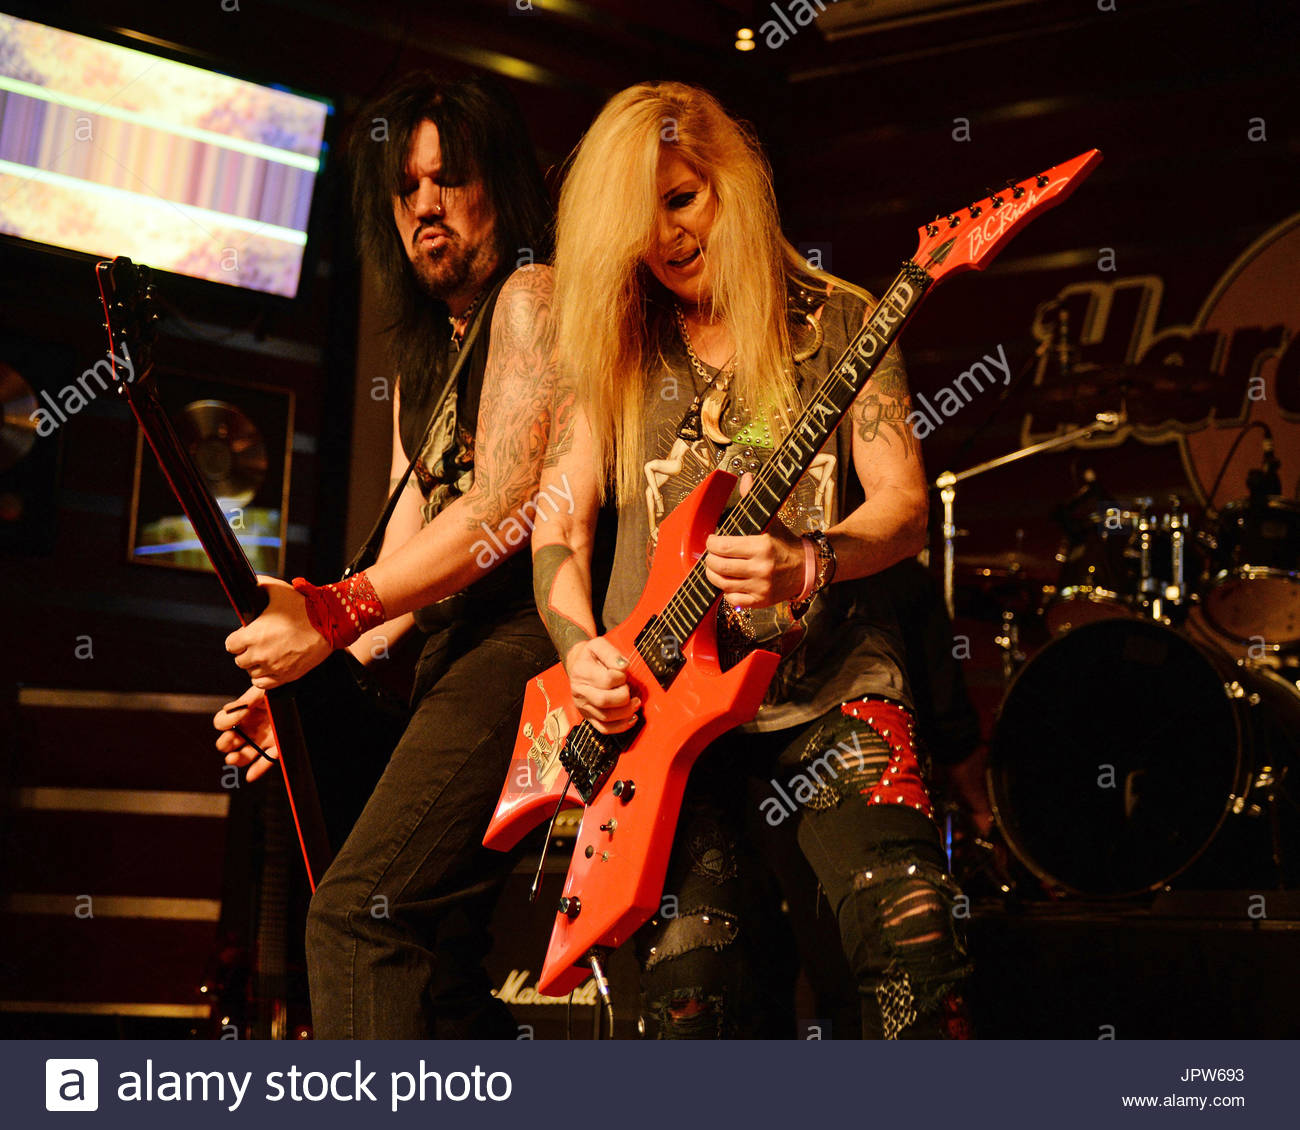 Lita ford lita ford judge a bartender contest before performing during pinktober fundraiser at hard